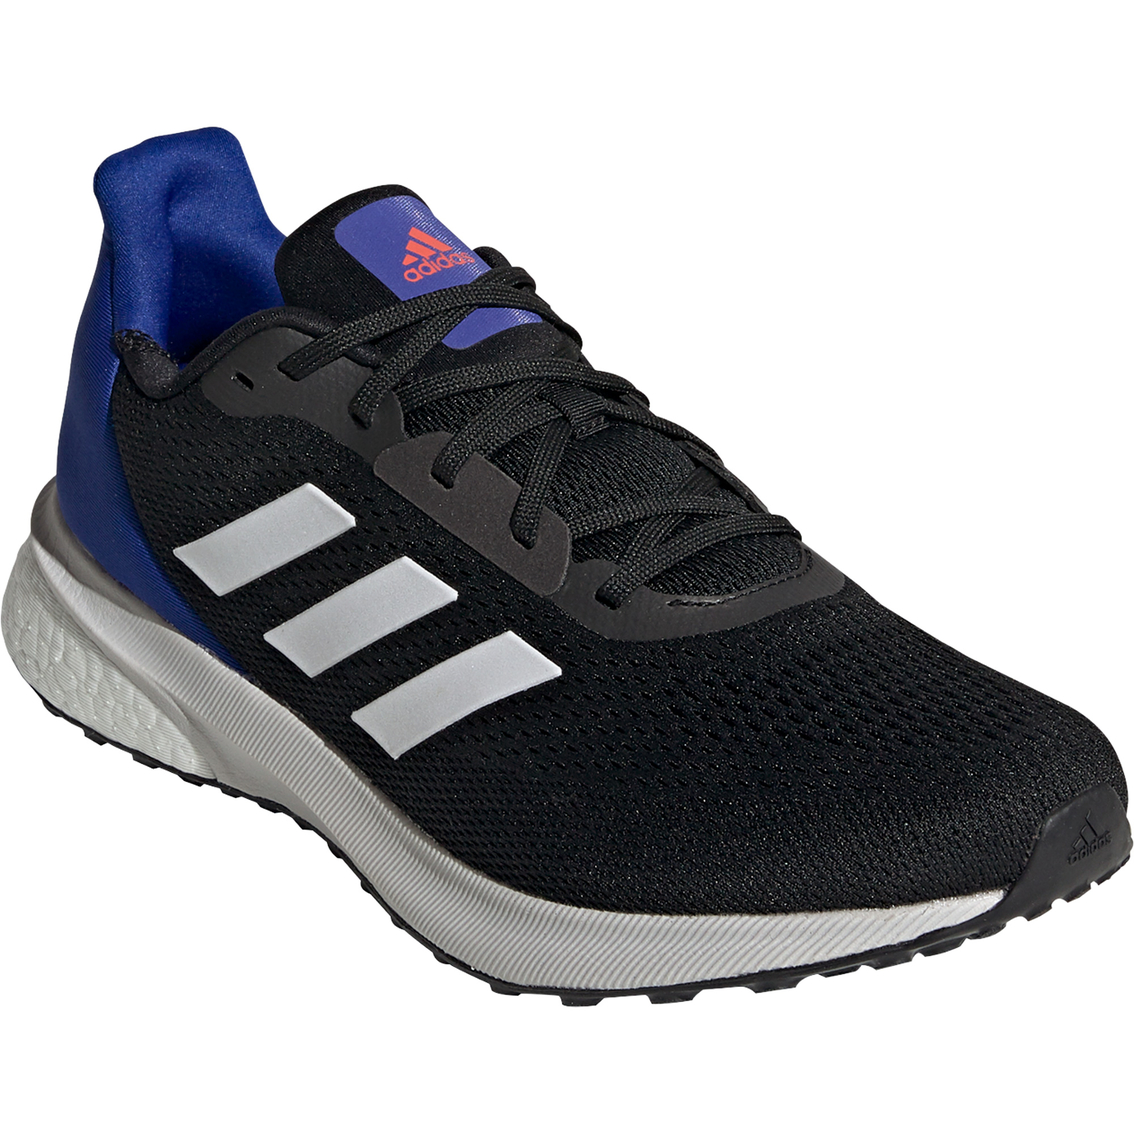 Astra Running Shoes